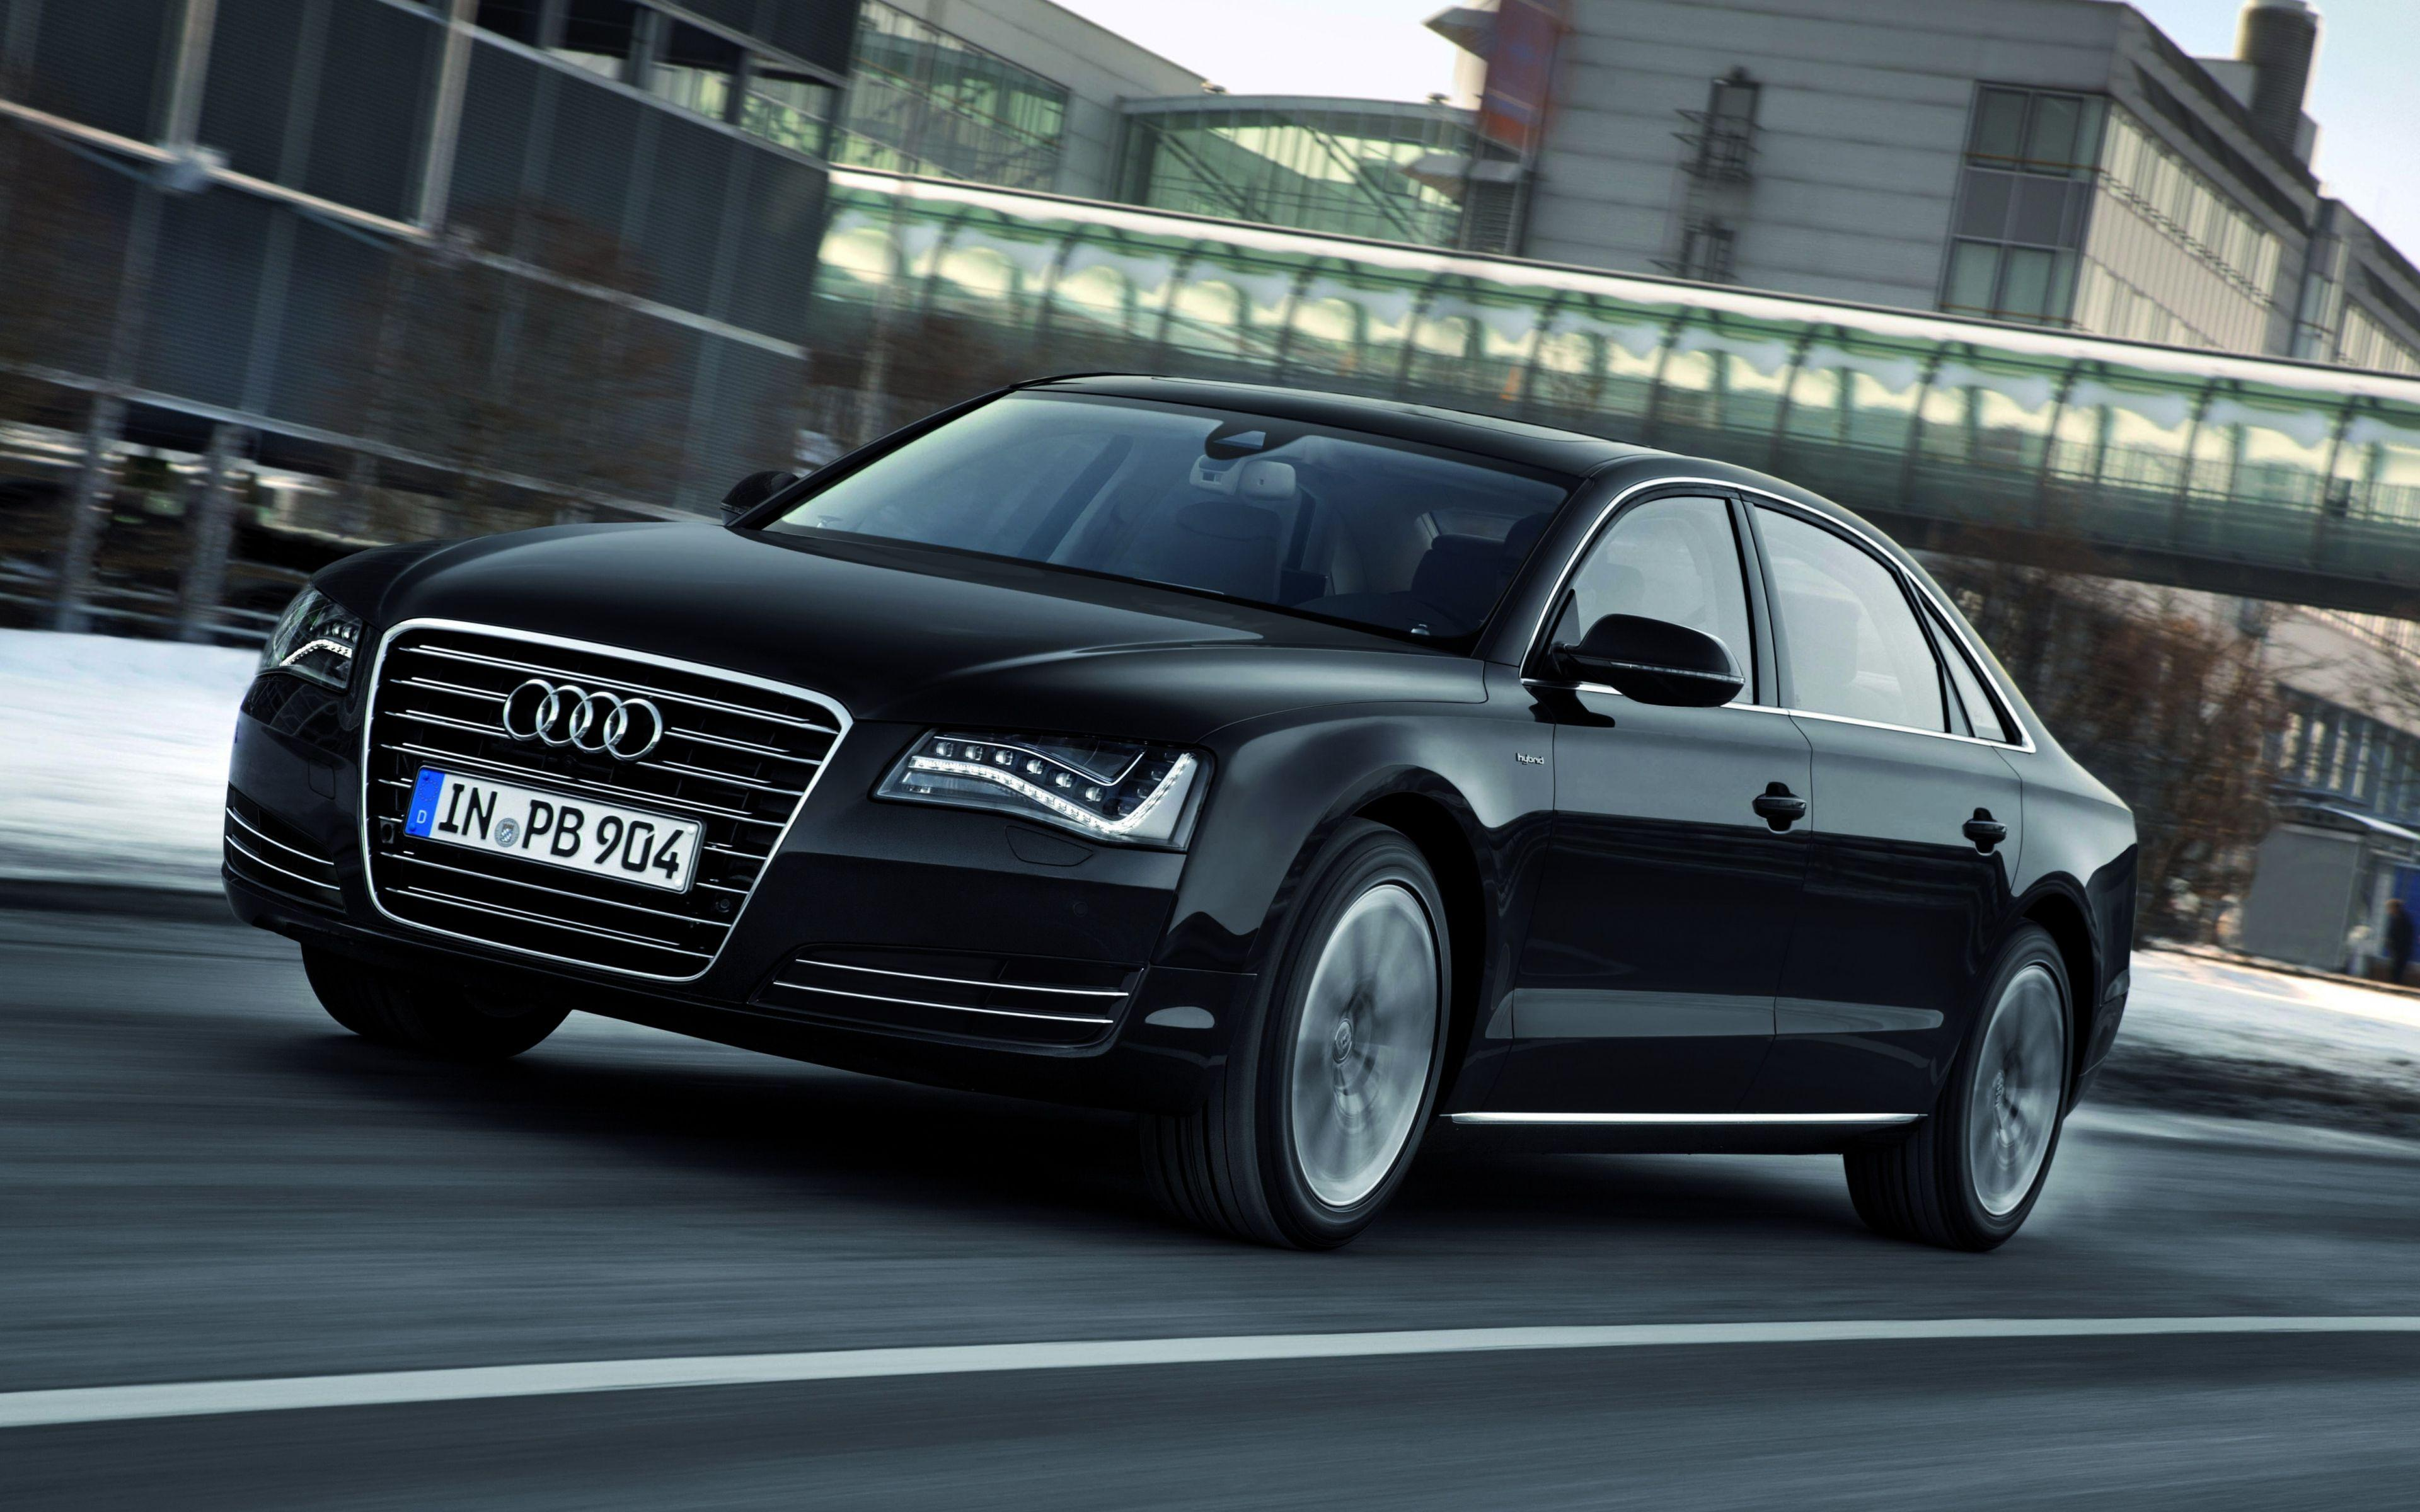 HD Backgrounds Audi A8 Black Side Front View Car Luxury Wallpapers